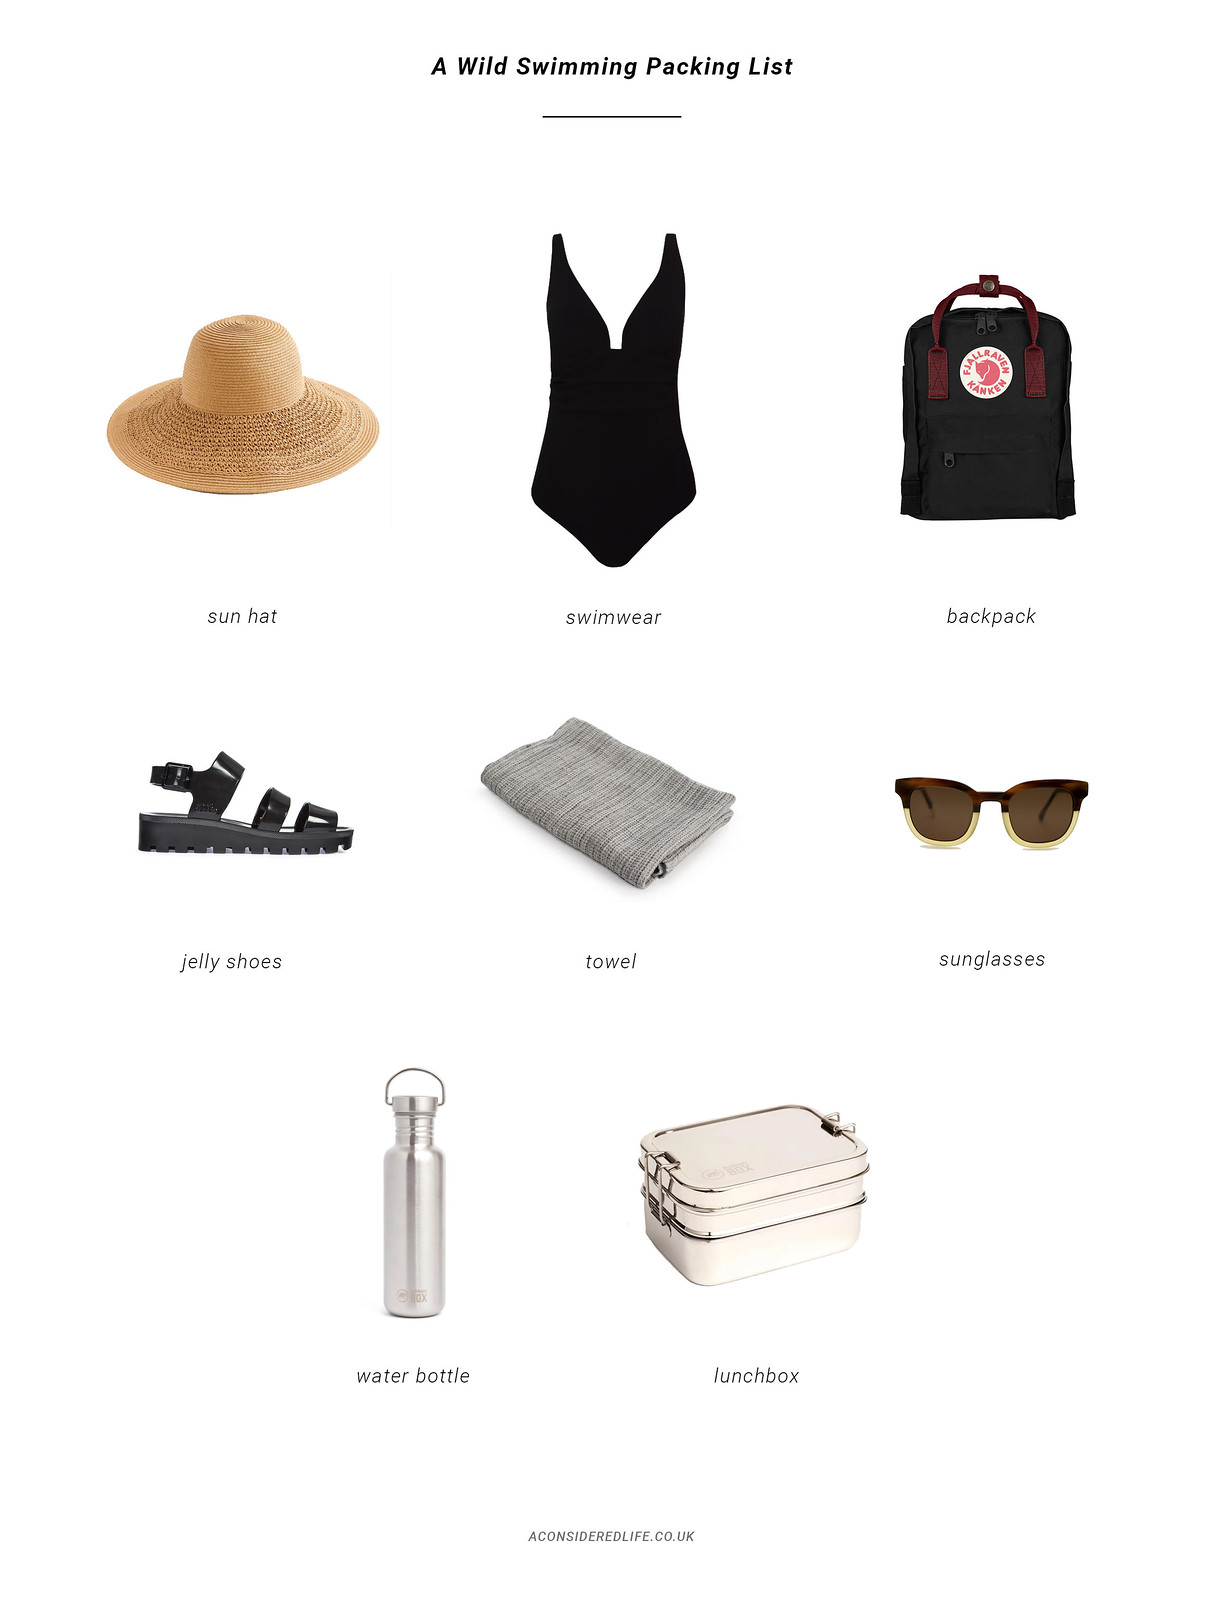 A Wild Swimming Packing List